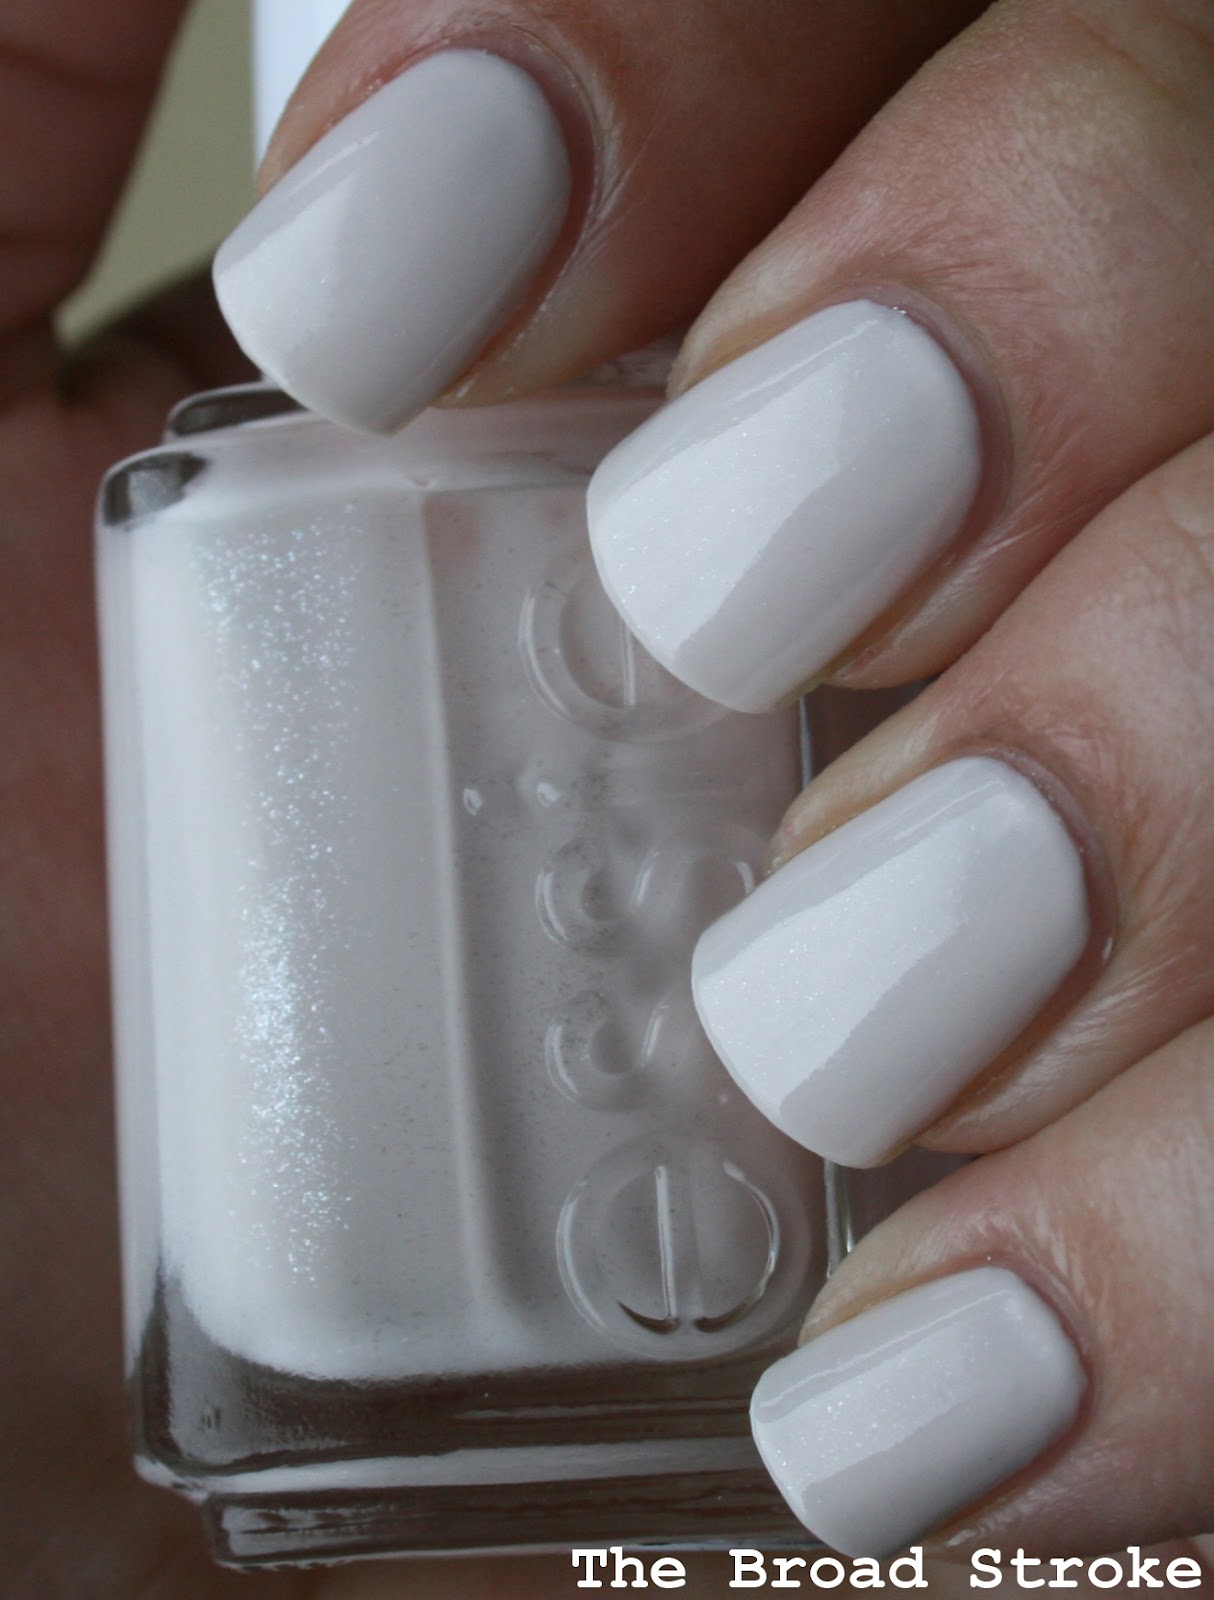 The Broad Stroke: Selections from the Essie Wedding Collection